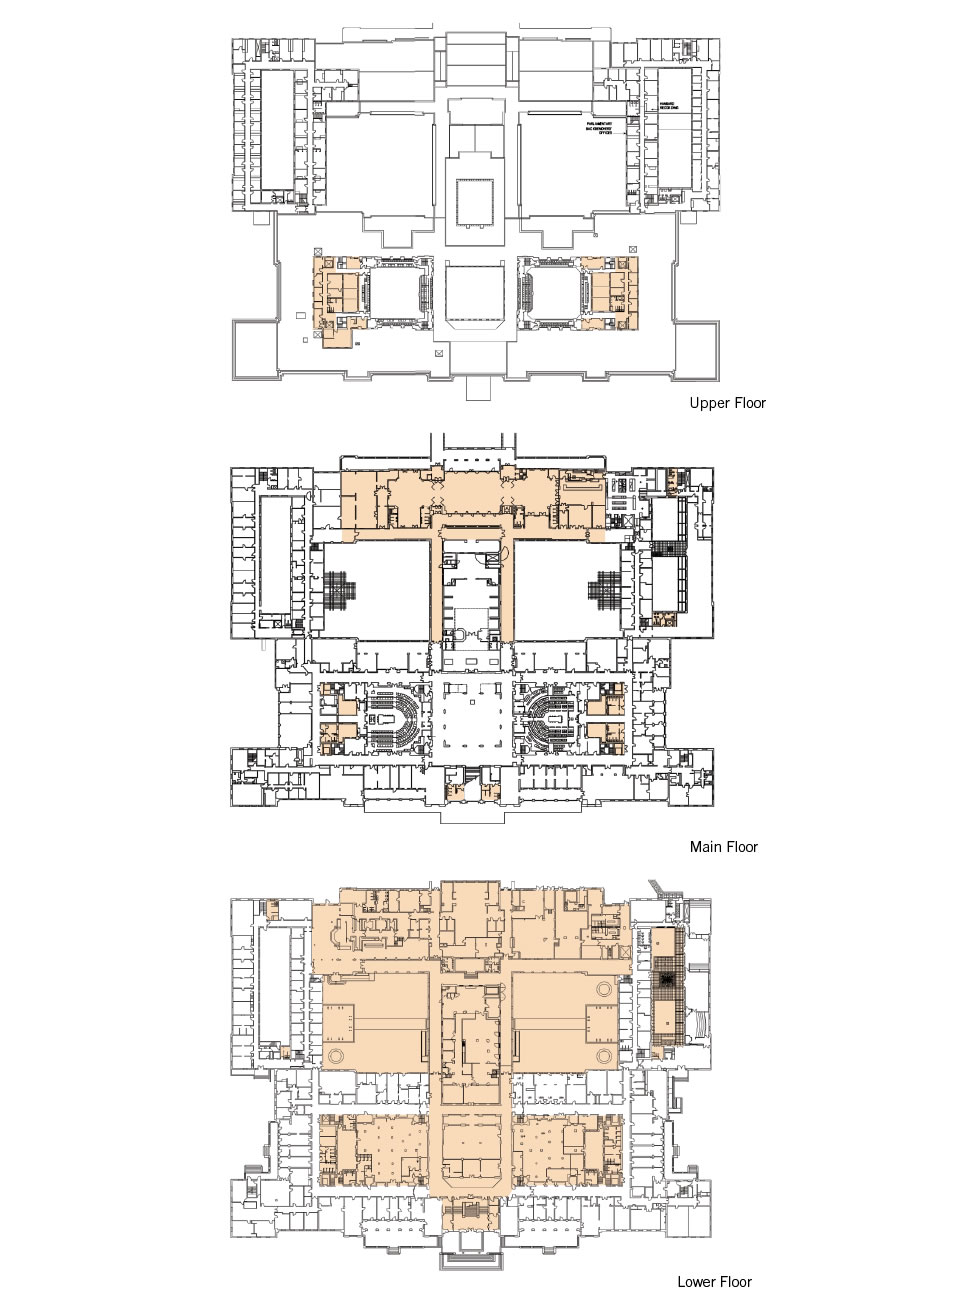 A floorplan of the upper, main and lower floors showing the ancillary functions zone.